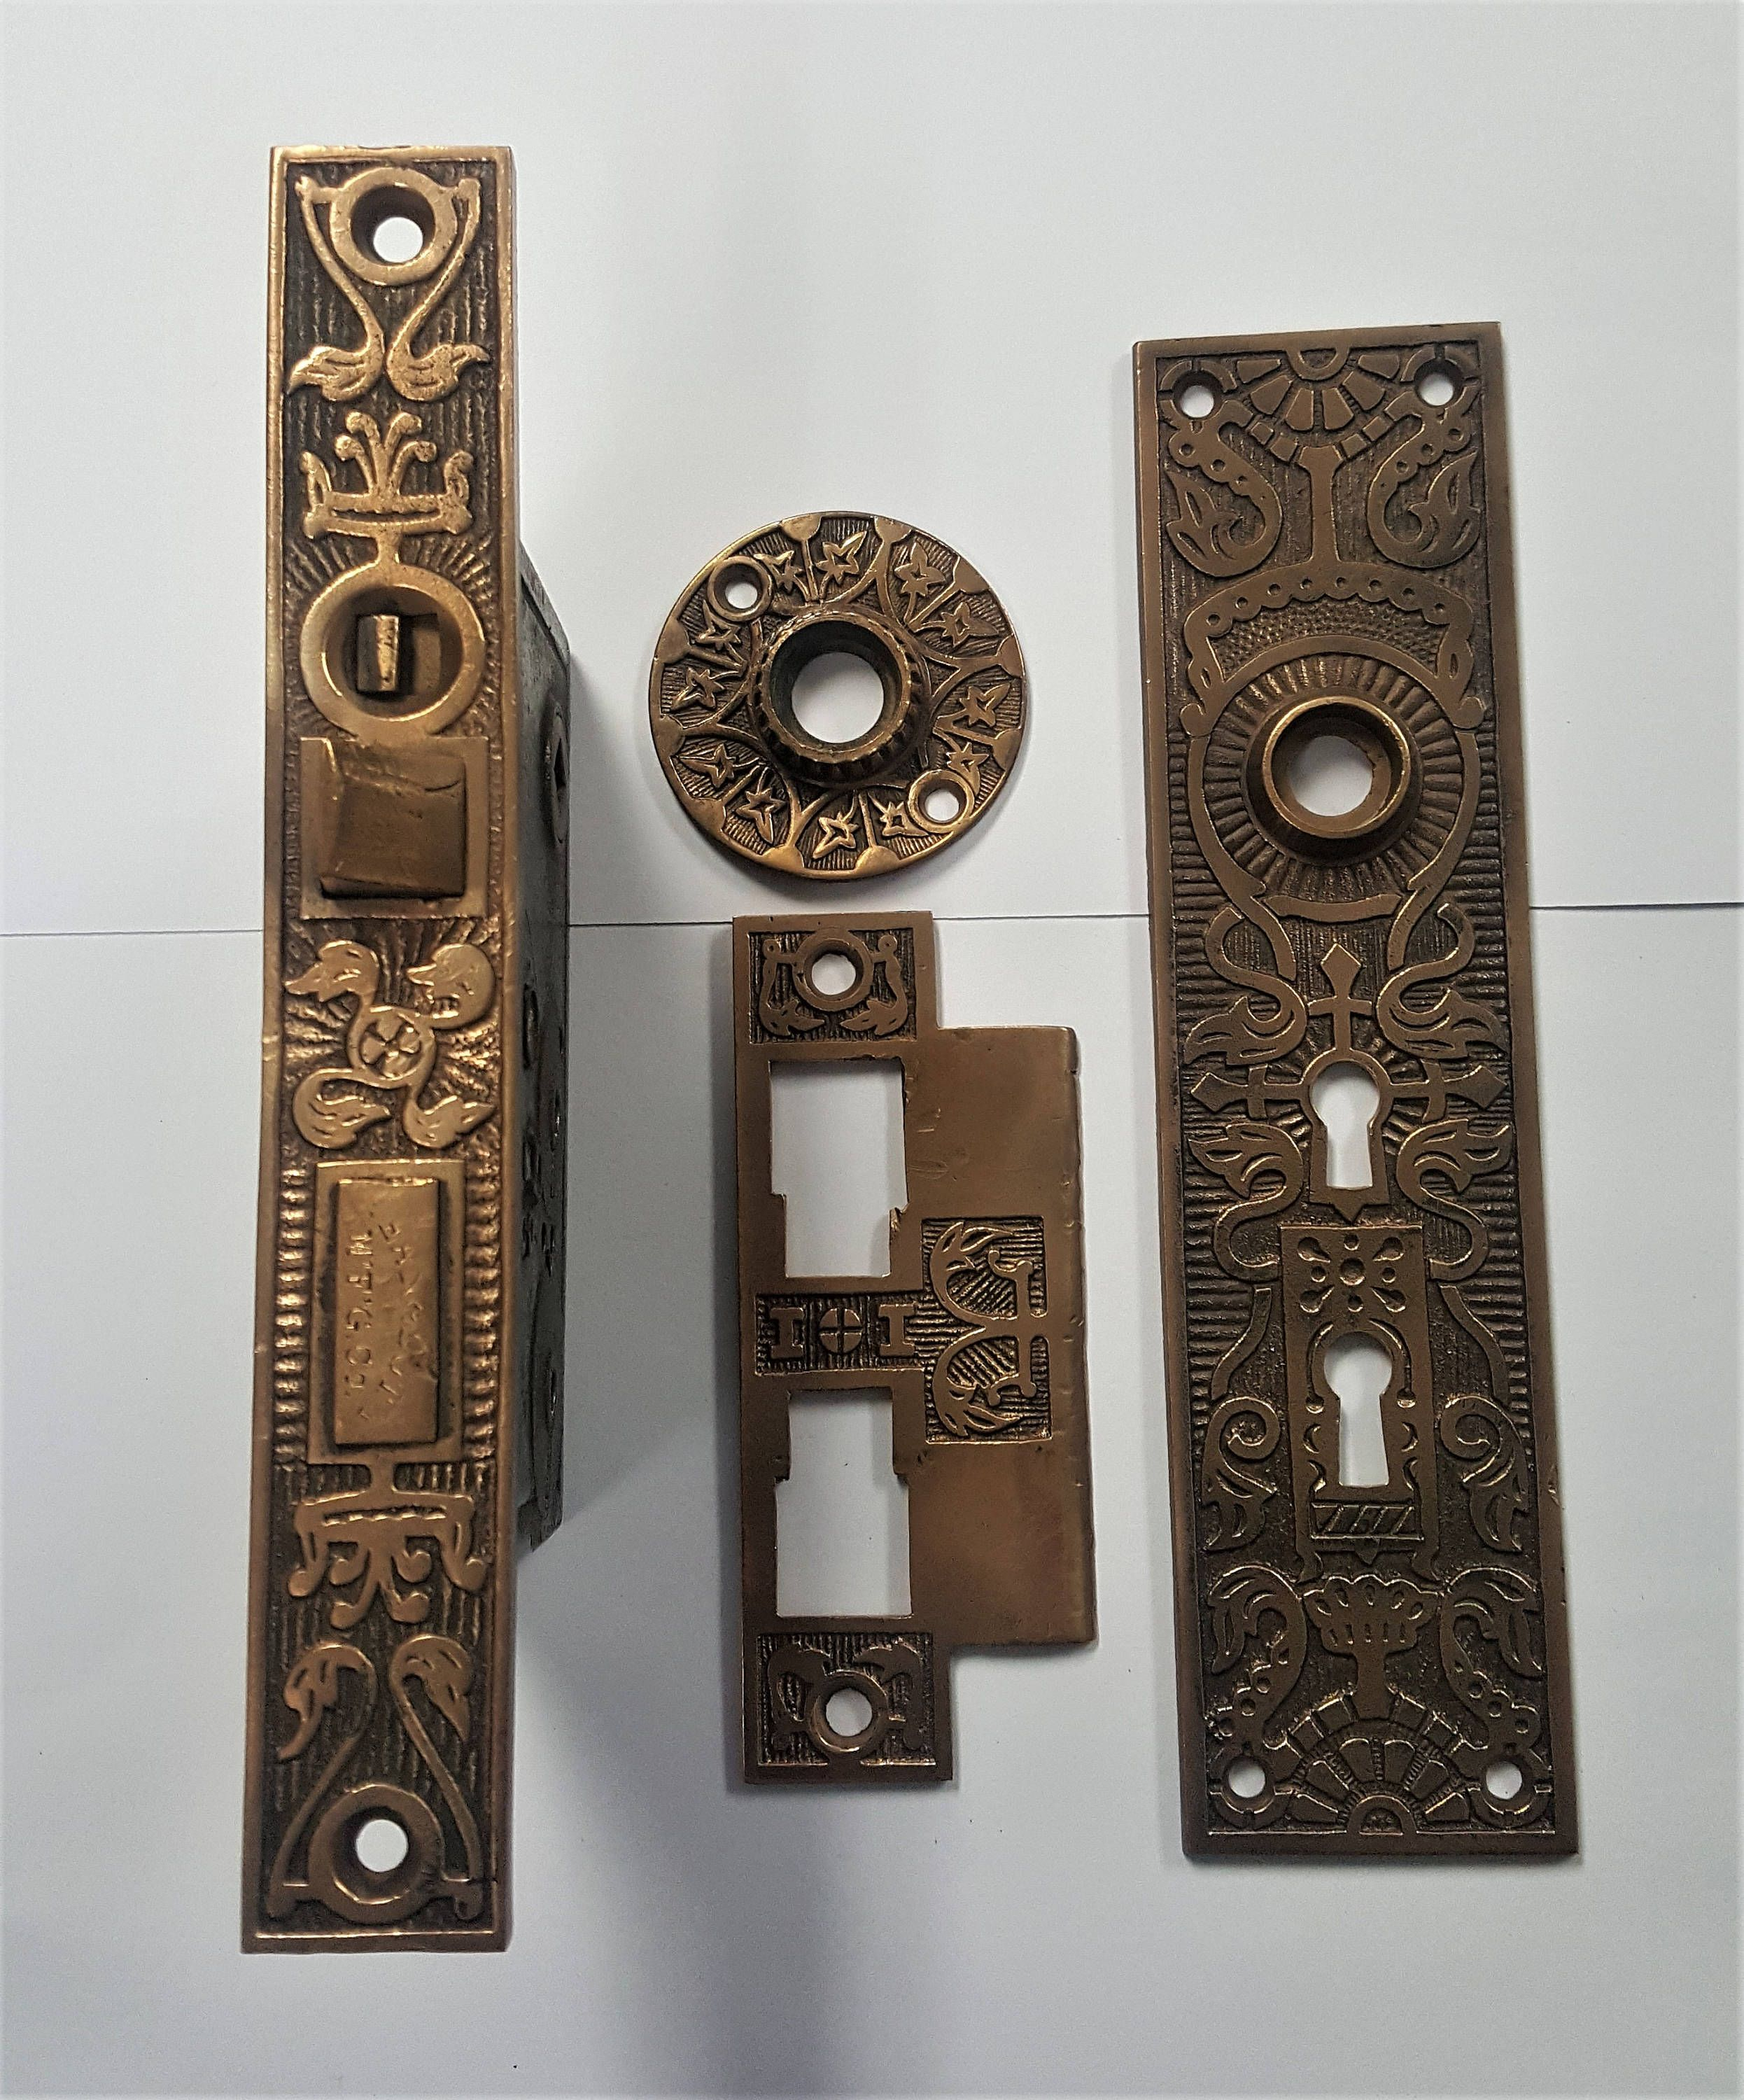 K D Antique Mortise Lock Set Back Plate Rosette And Lock